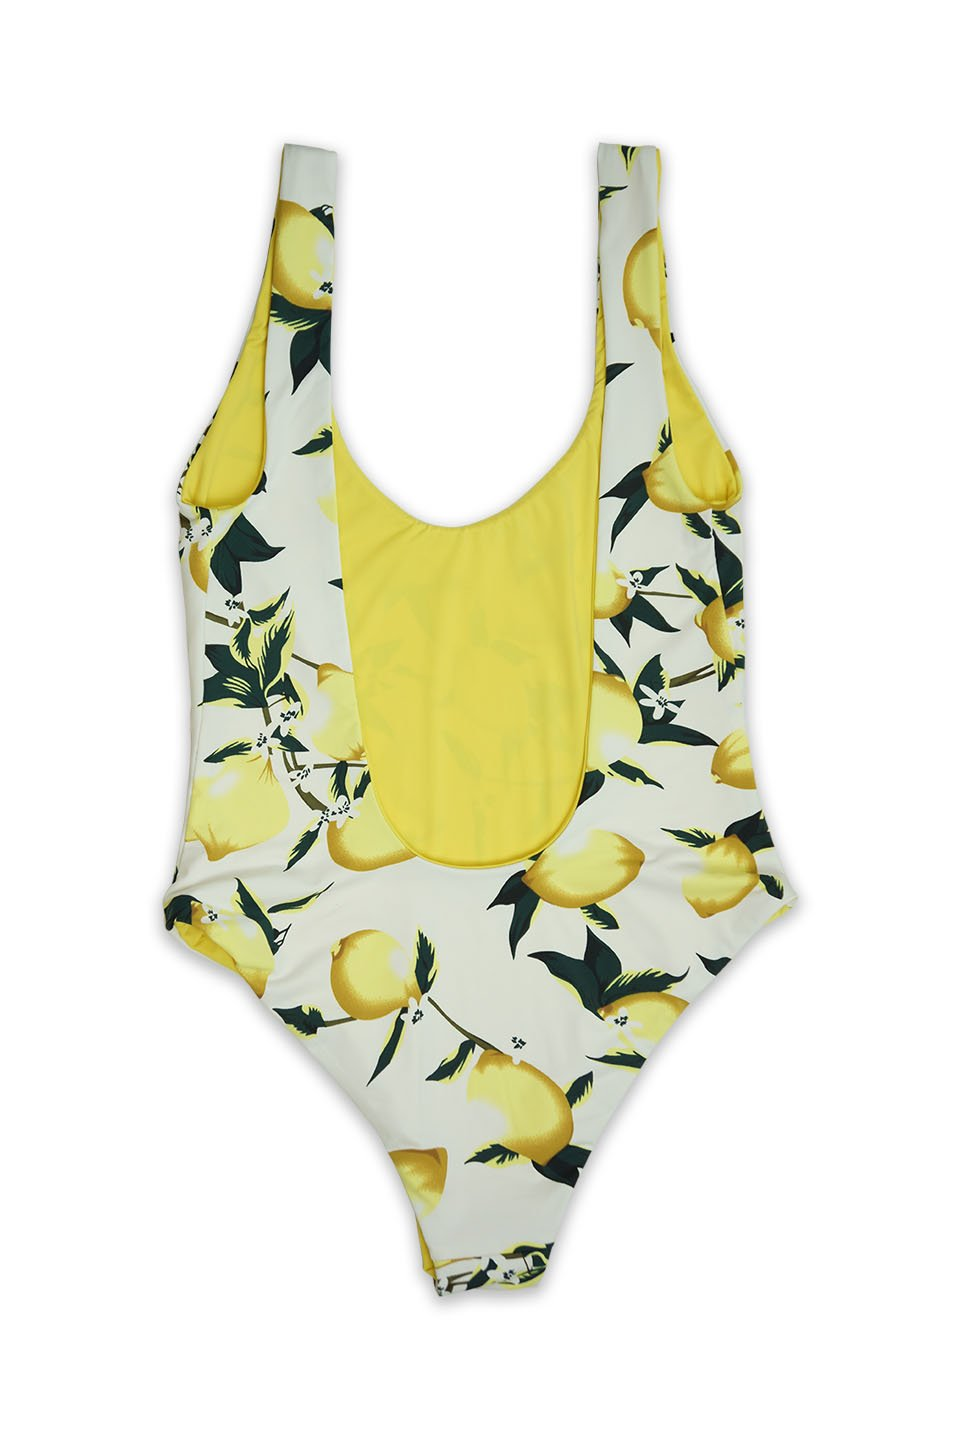 Low Back Moderate Coverage One Piece in Lemon